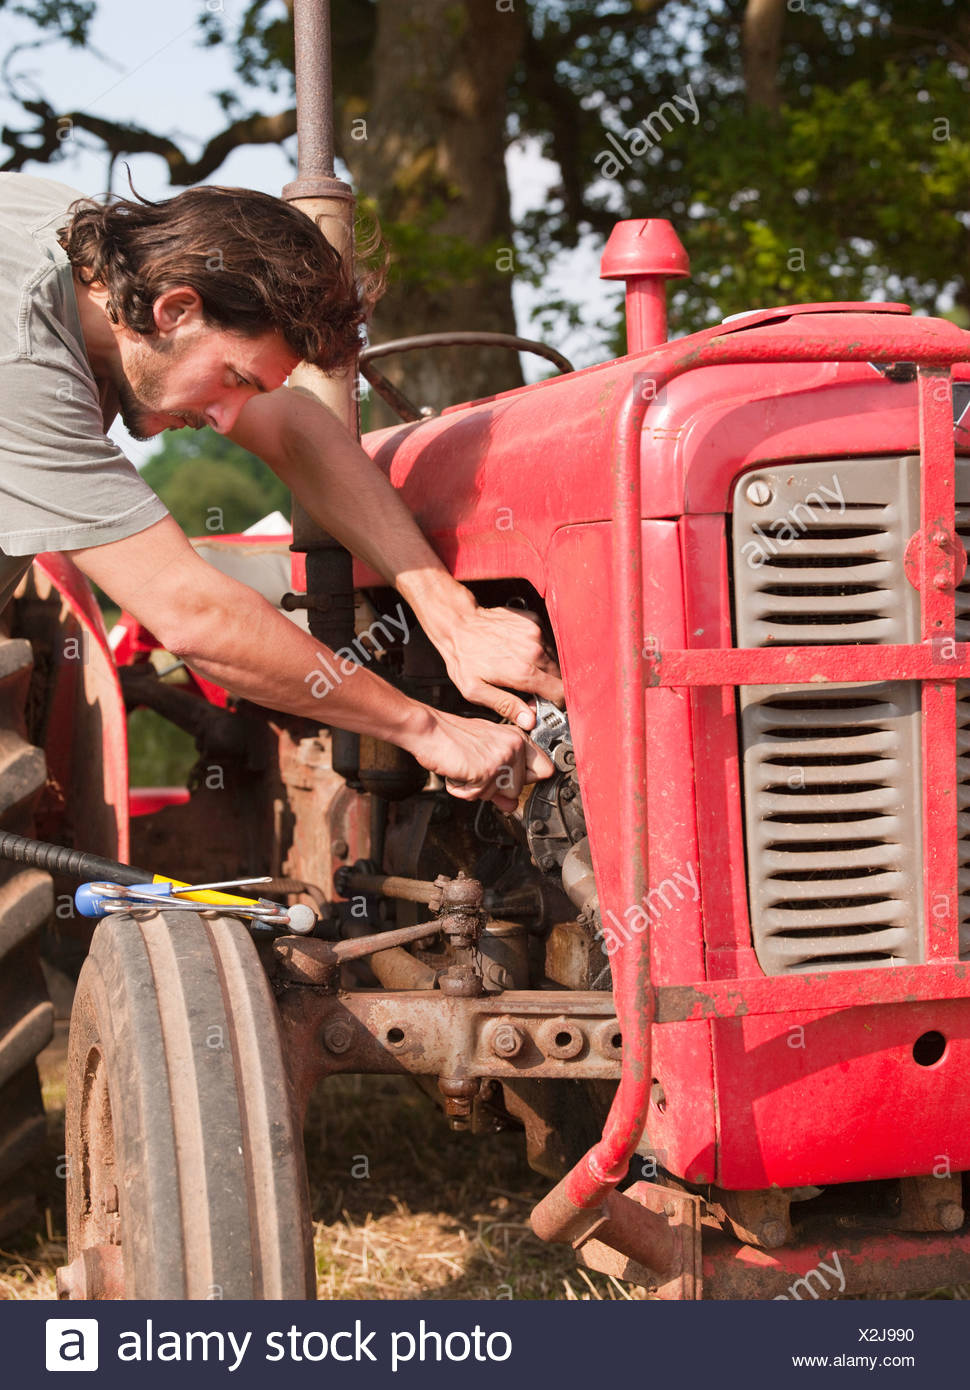 man using tools on tractor - Stock Image